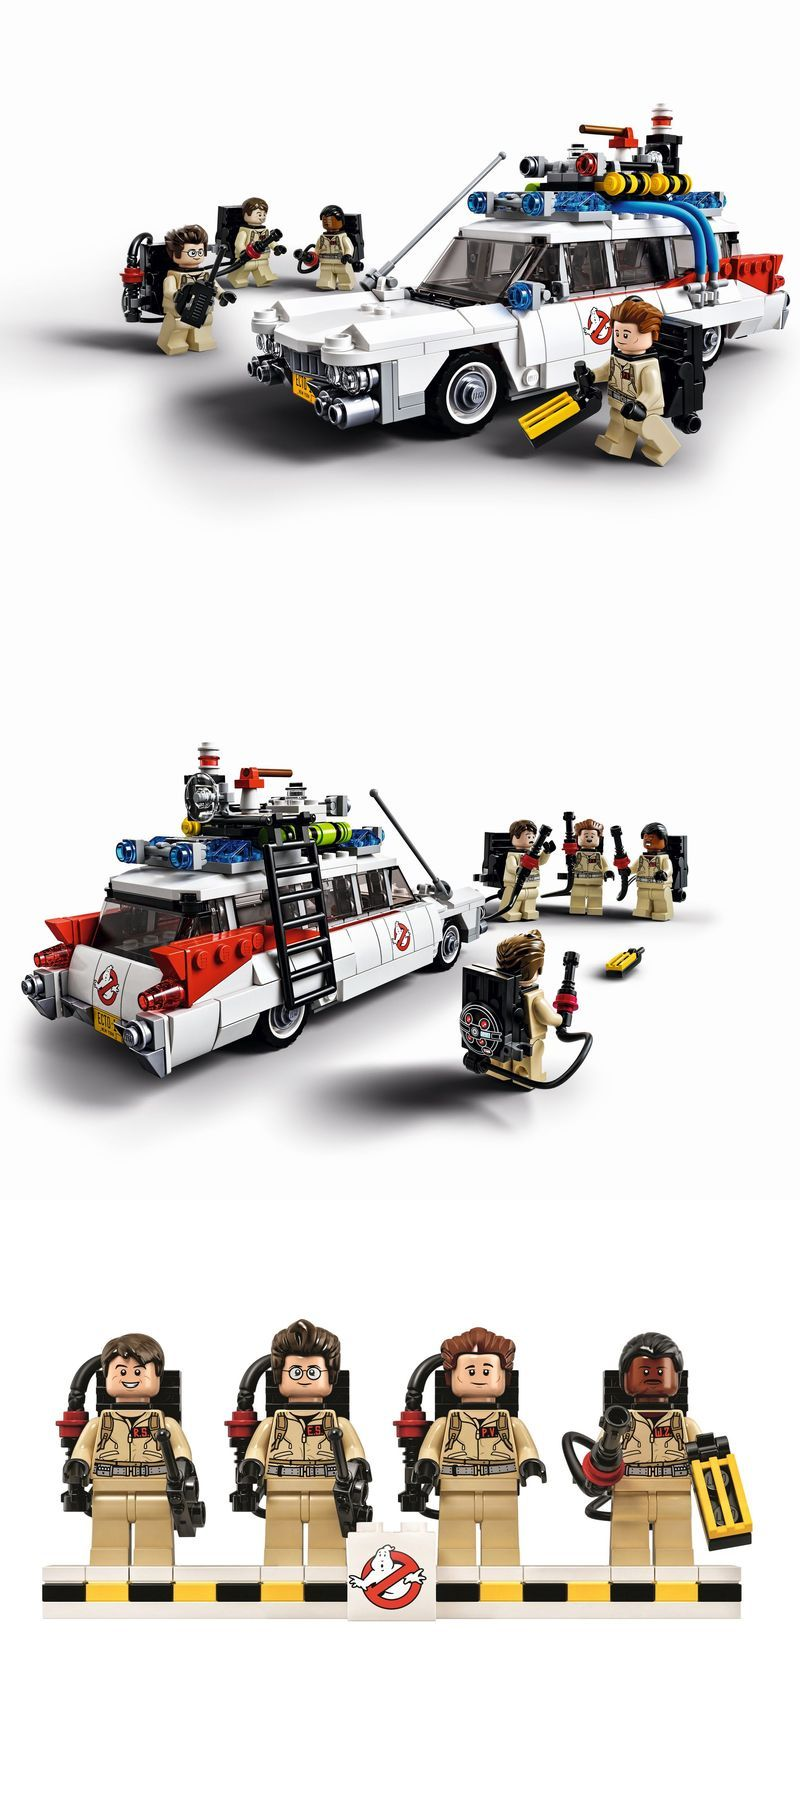 Ikea Hours Kc Lego 21108 - Ghostbusters - Coming From 2014 June! | Lego